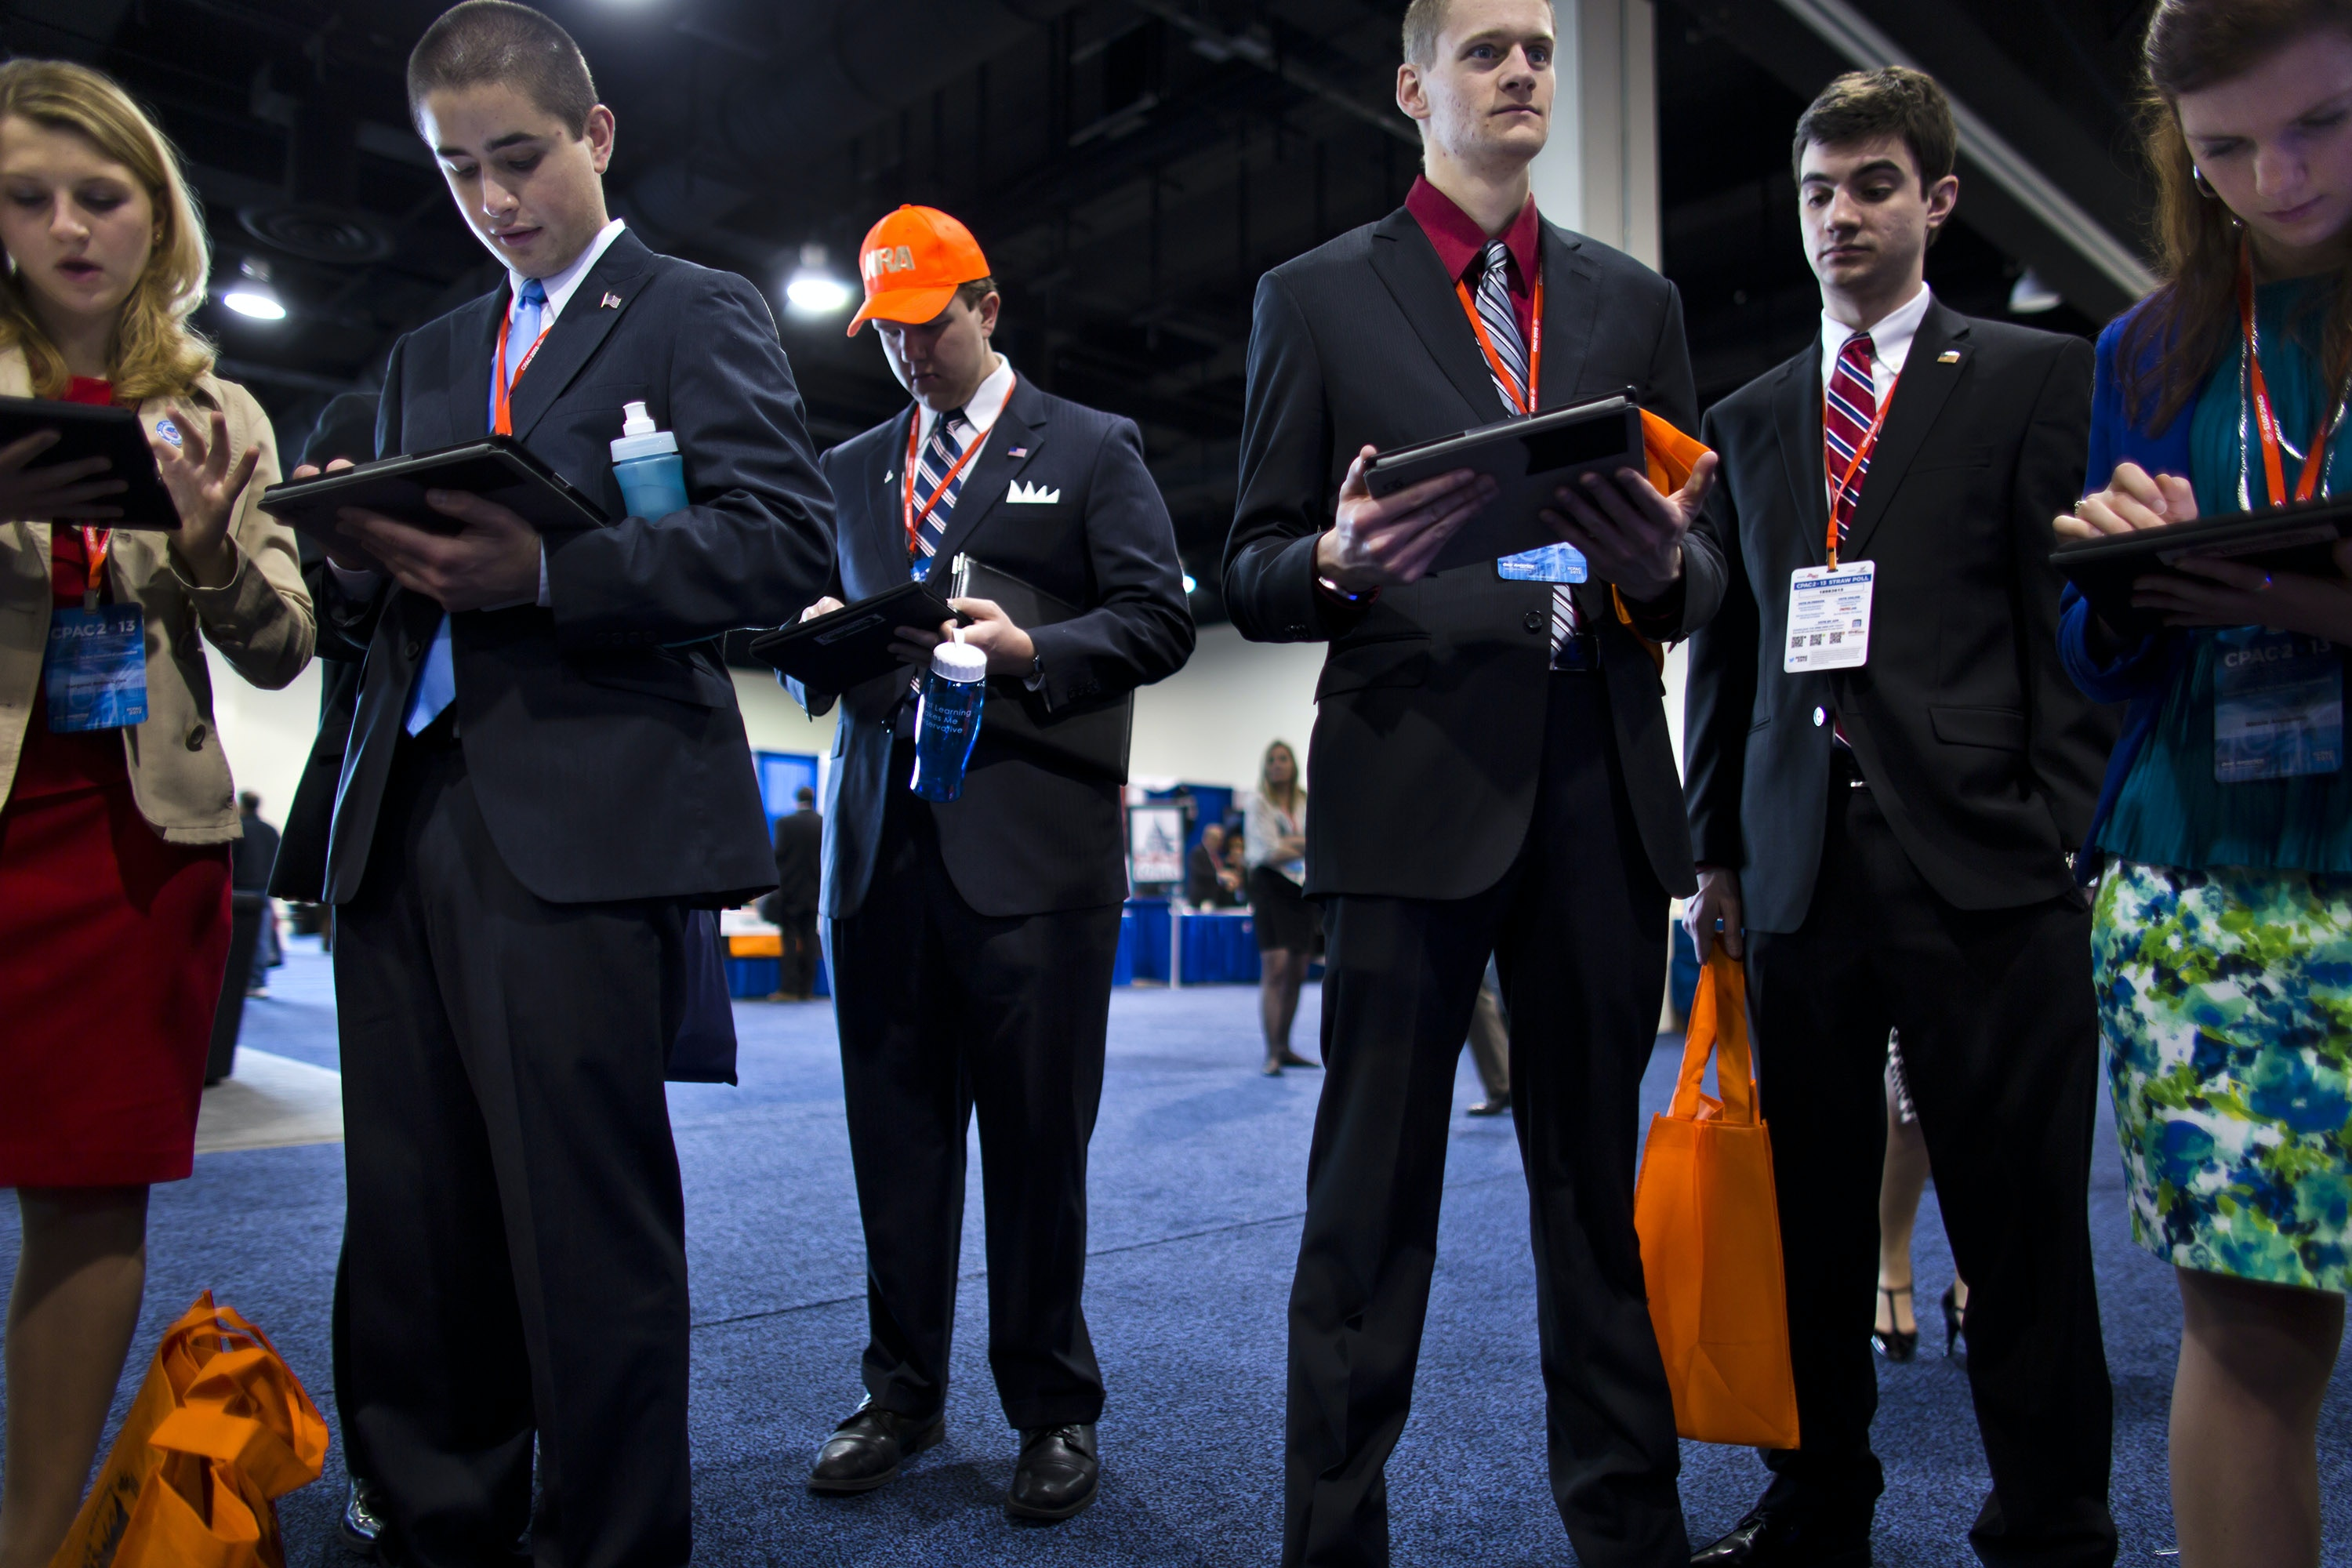 epa03625921 Young republicans holding iPads take a test, offered by the right-wing organization Generation Opportunity, about economic issues that are important to them at the 40th Annual Conservative Political Action Conference (CPAC) at the Gaylord National Resort & Convention Center in National Harbor, Maryland, USA, 15 March 2013.  EPA/JIM LO SCALZO